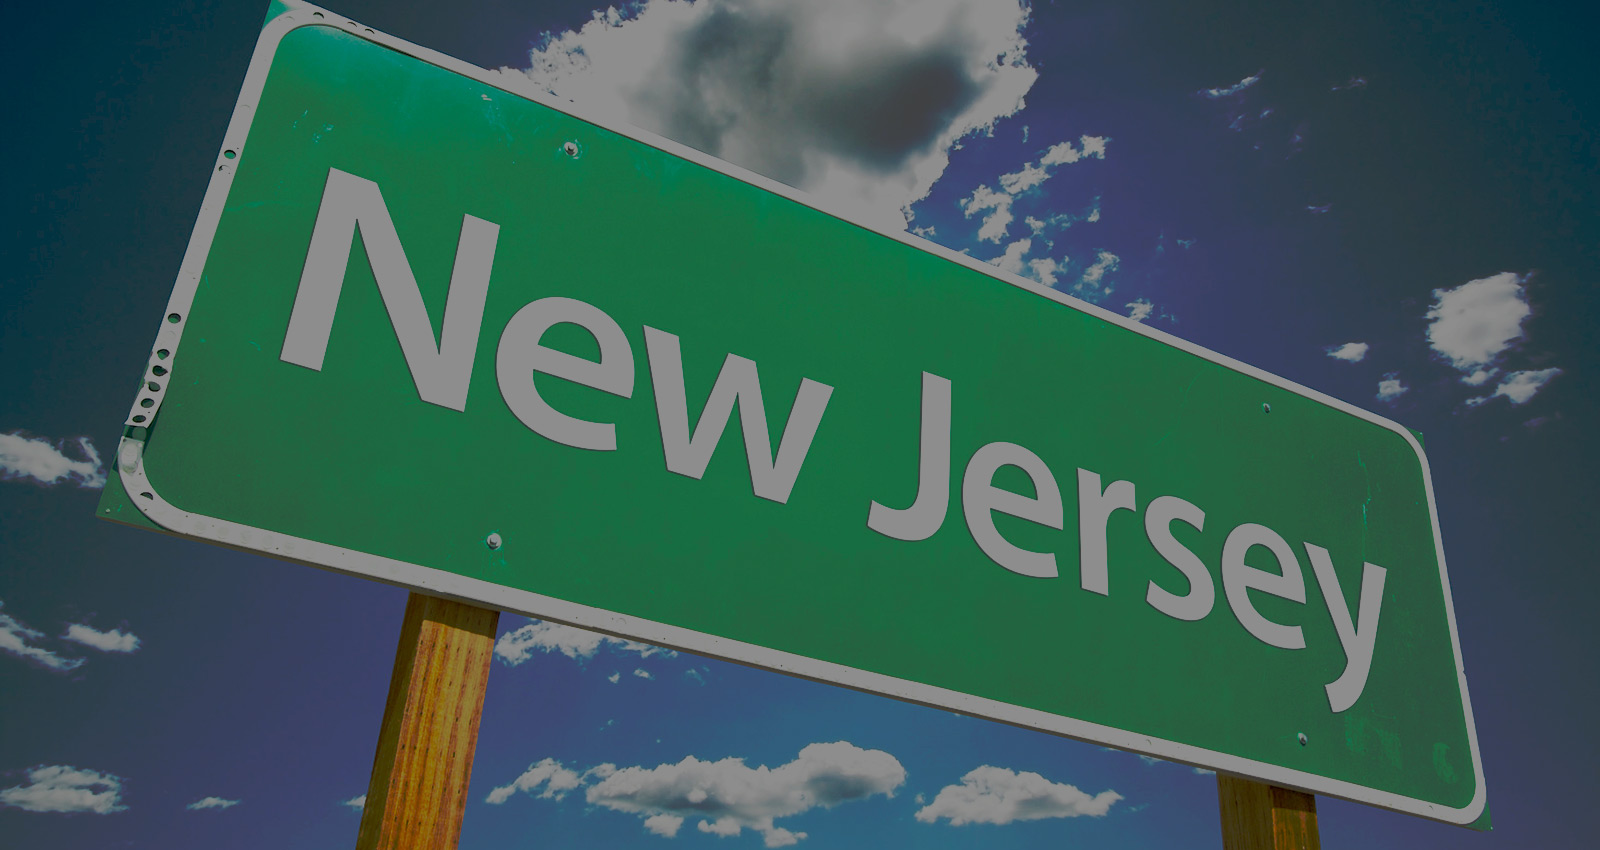 GreatNJ.com - NJ's Search Directory